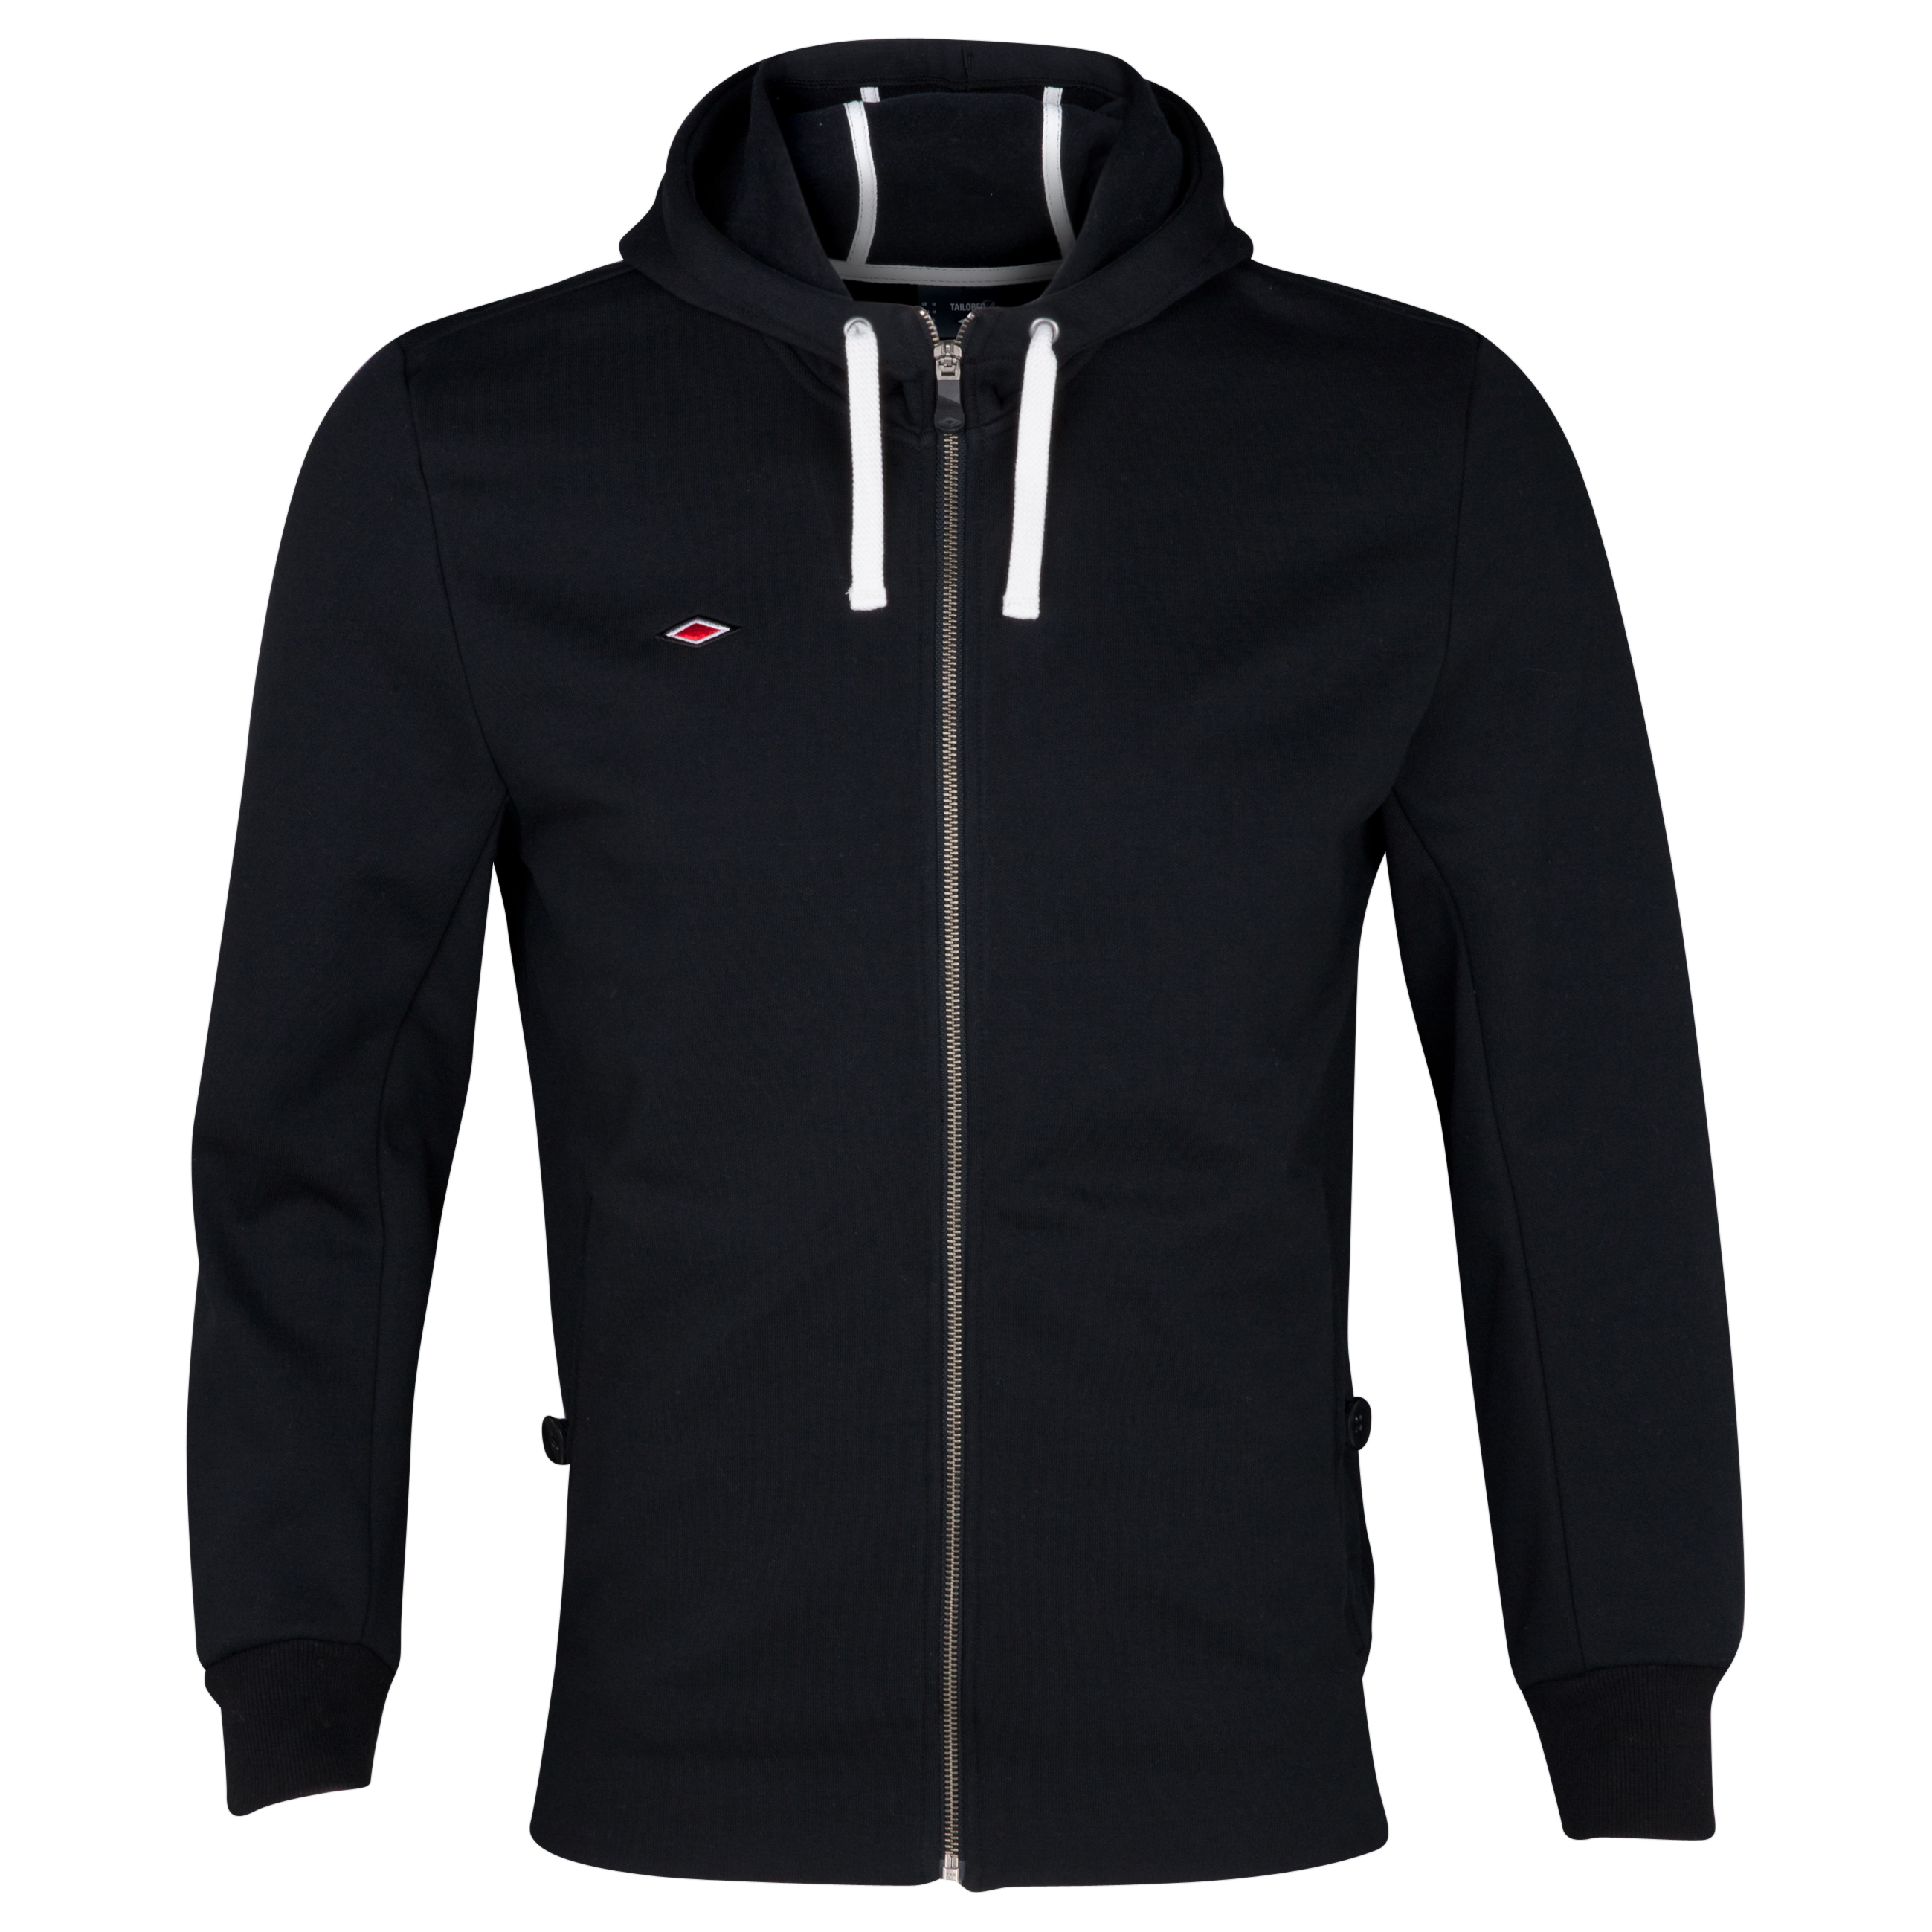 Umbro Full Zip Hooded Sweatshirt - Black